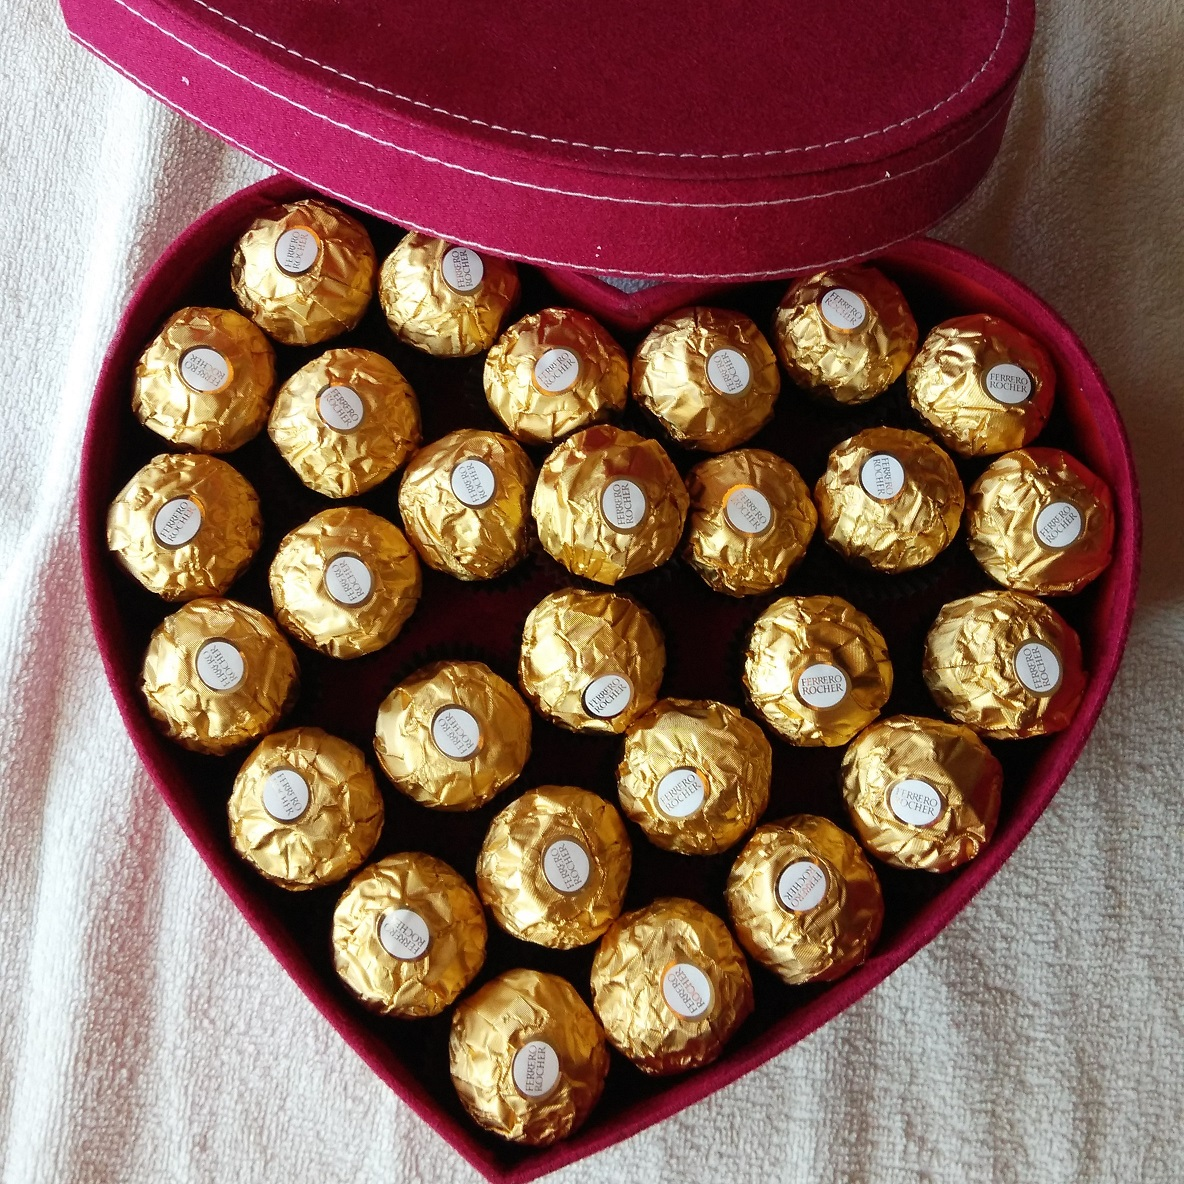 Image result for ferrero heart shaped chocolate